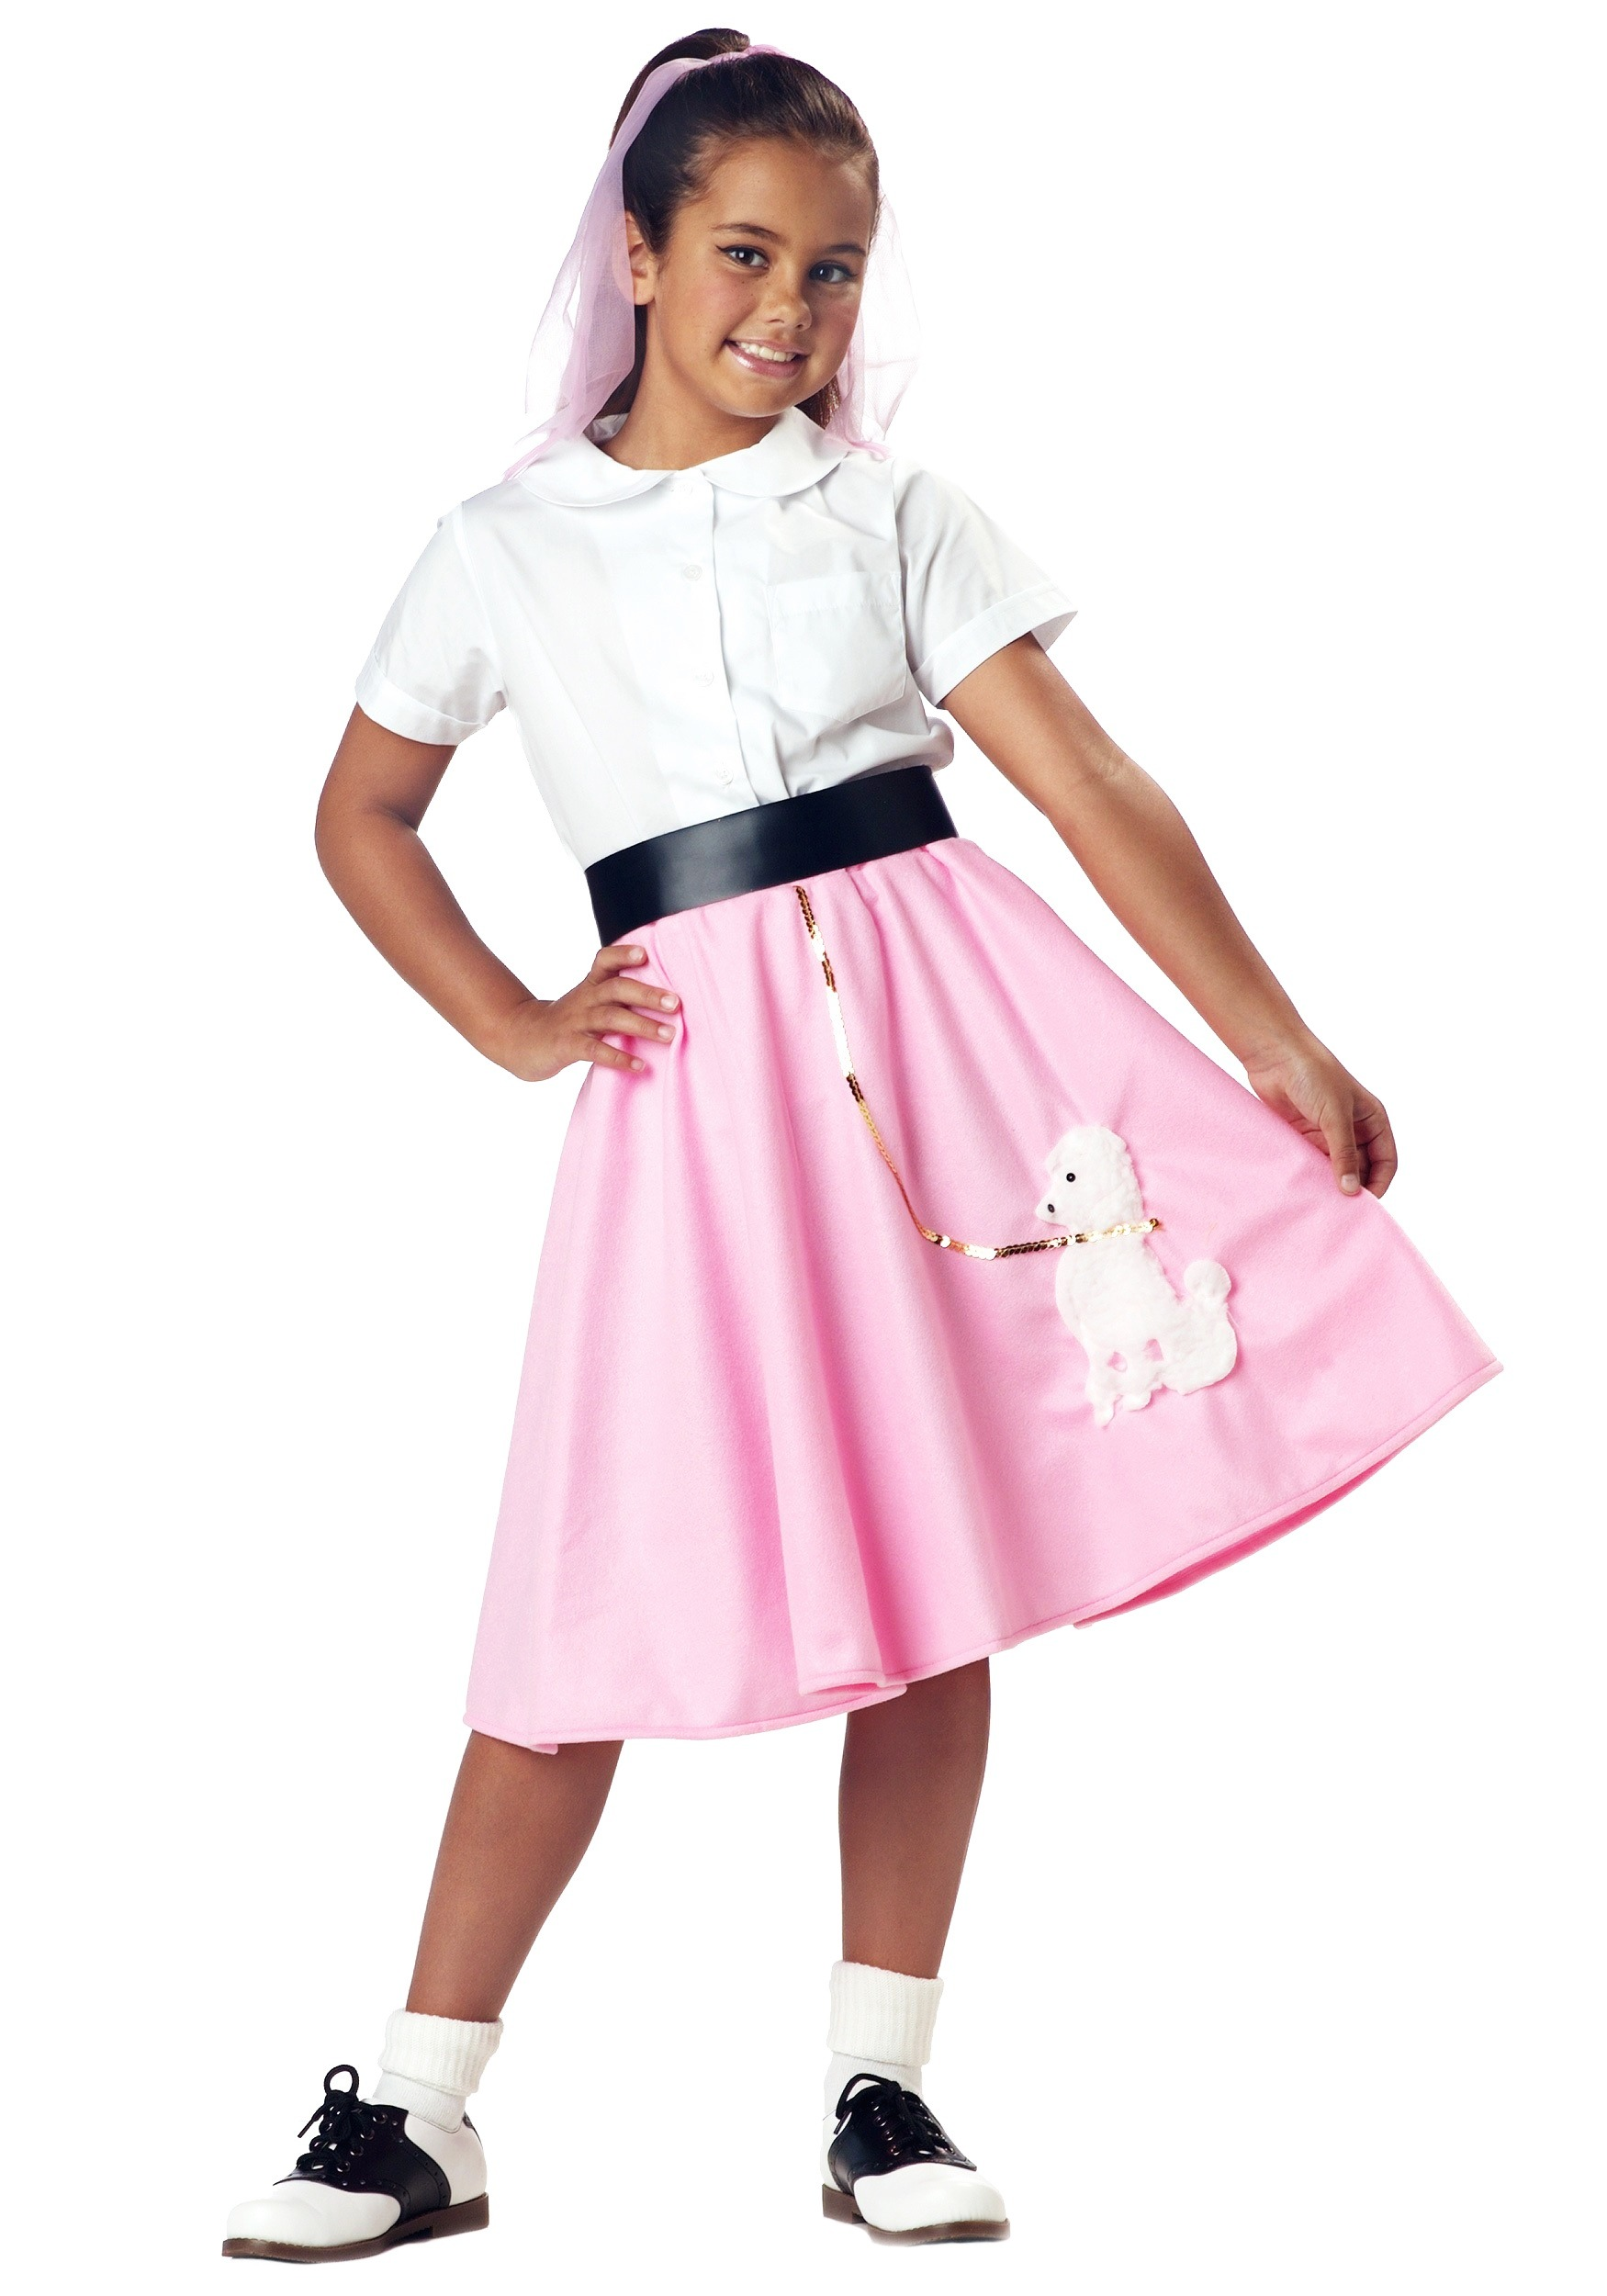 Hip Hop 50s Shop Womens 8pc Black w// Pink Poodle Skirt Halloween Costume Set